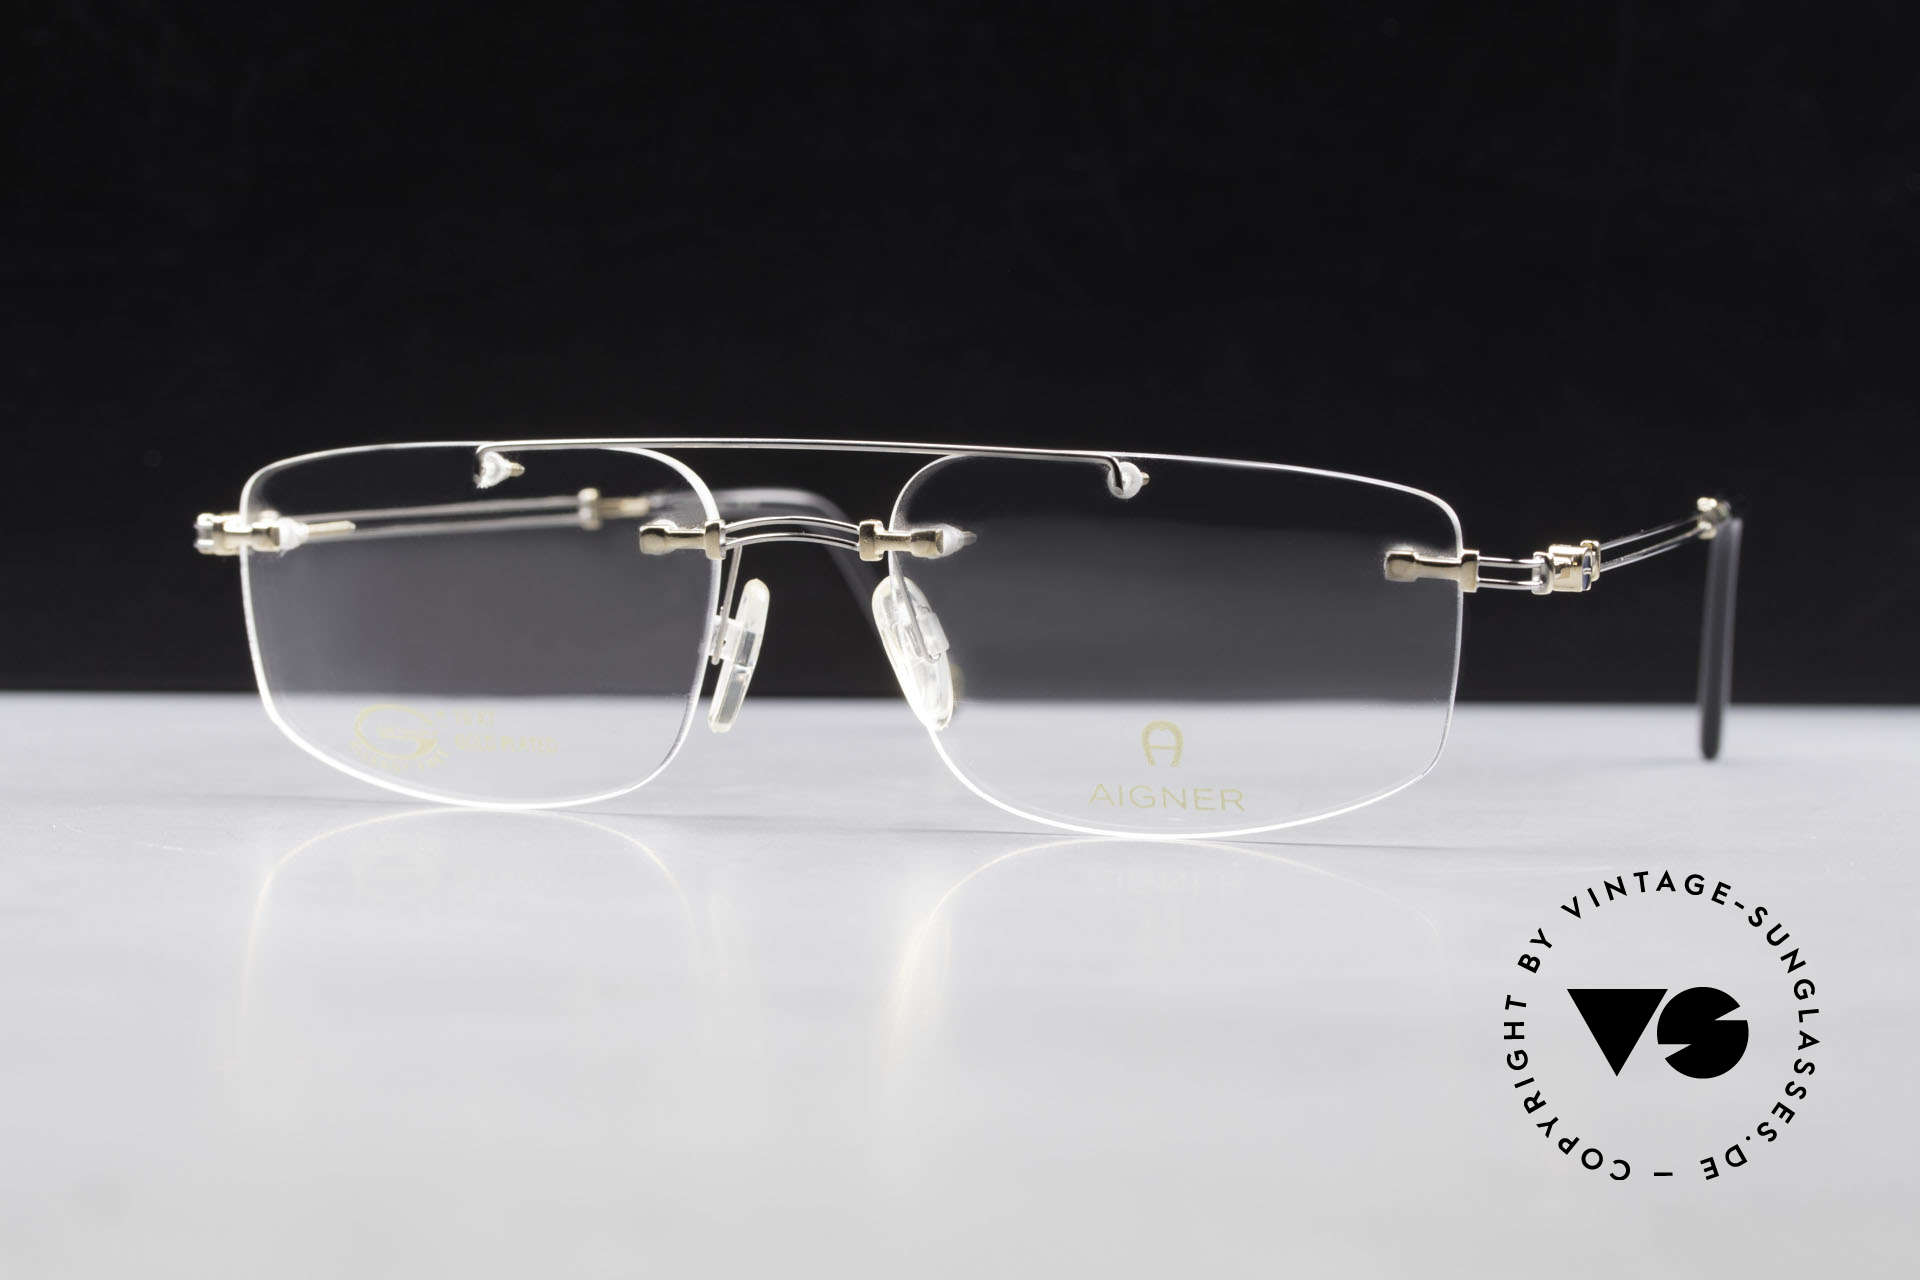 Aigner EA499 Rimless Vintage Glasses Men, Size: large, Made for Men